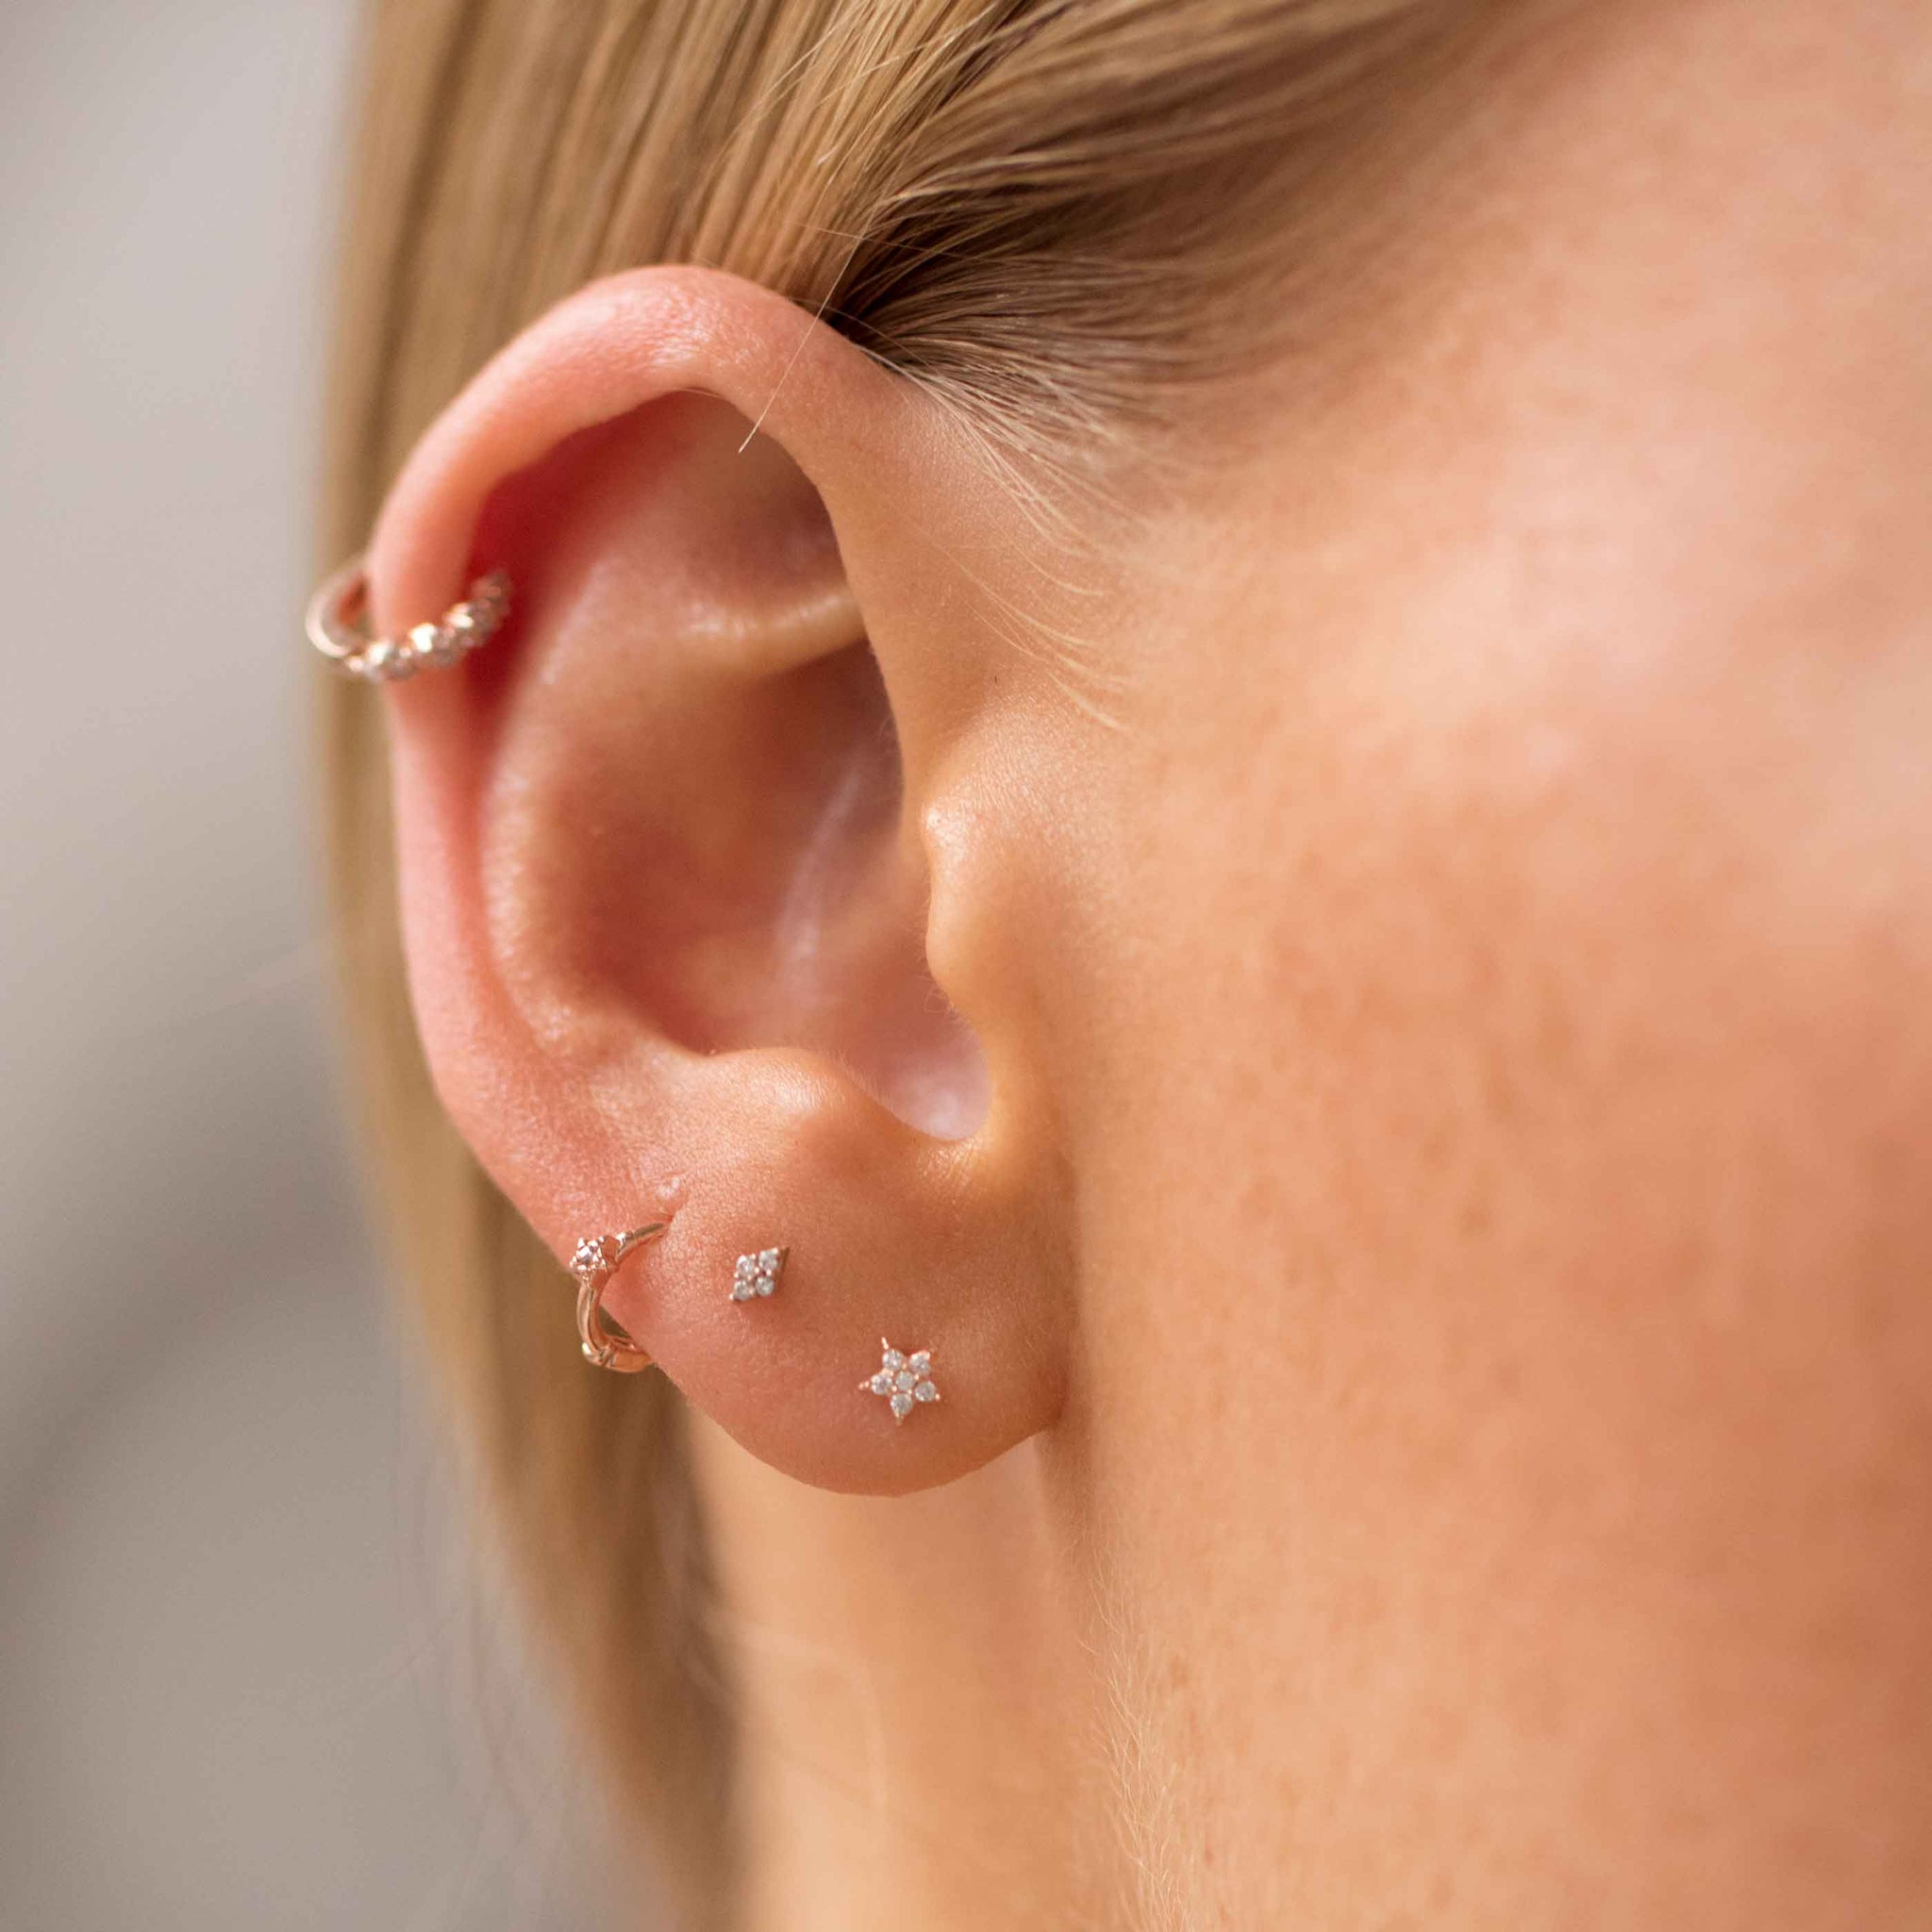 Jewelled Star Barbell in Rose Gold on Ear Stack